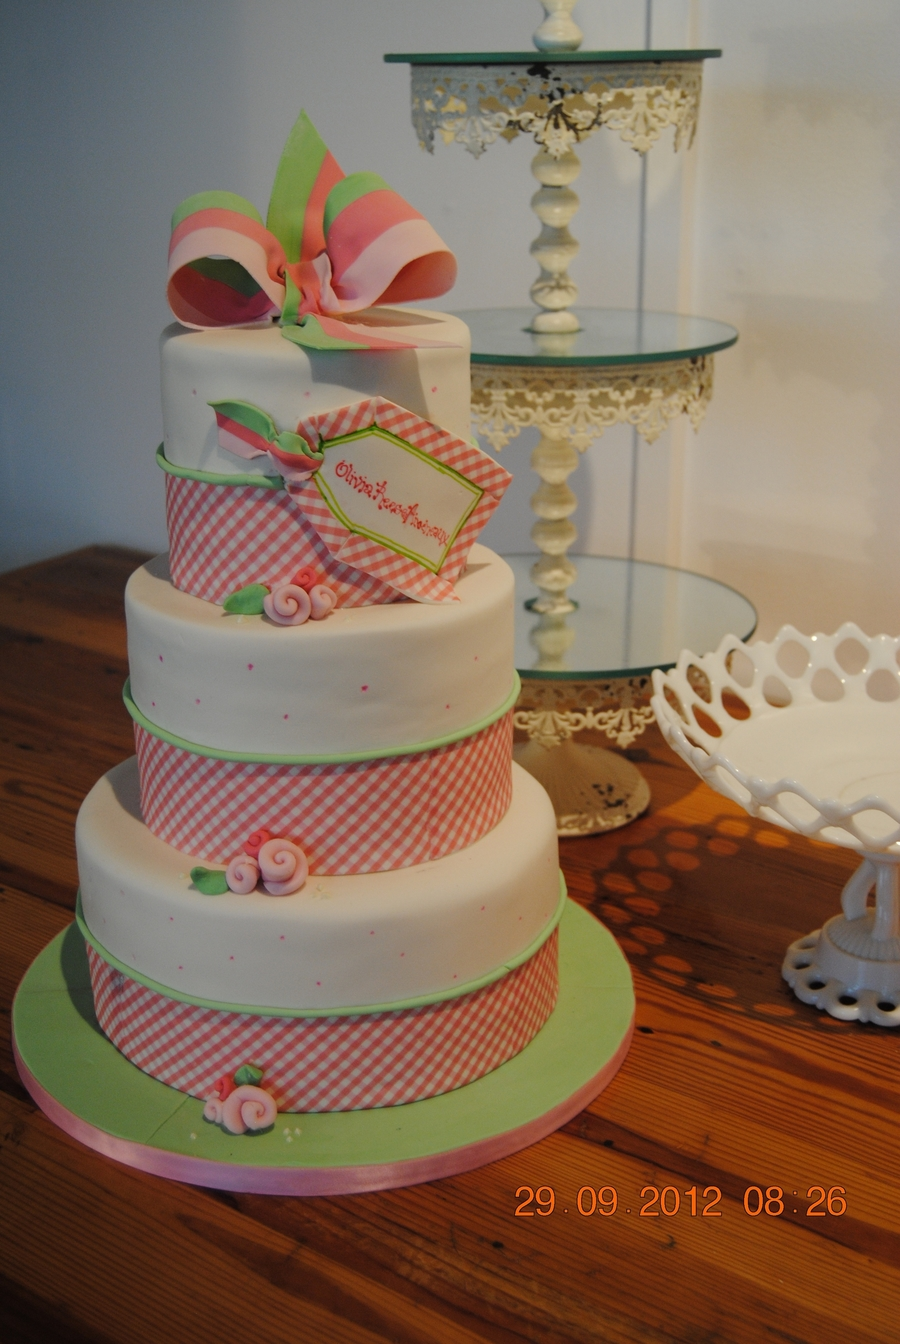 Baby Shower Cake To Match Invitation on Cake Central